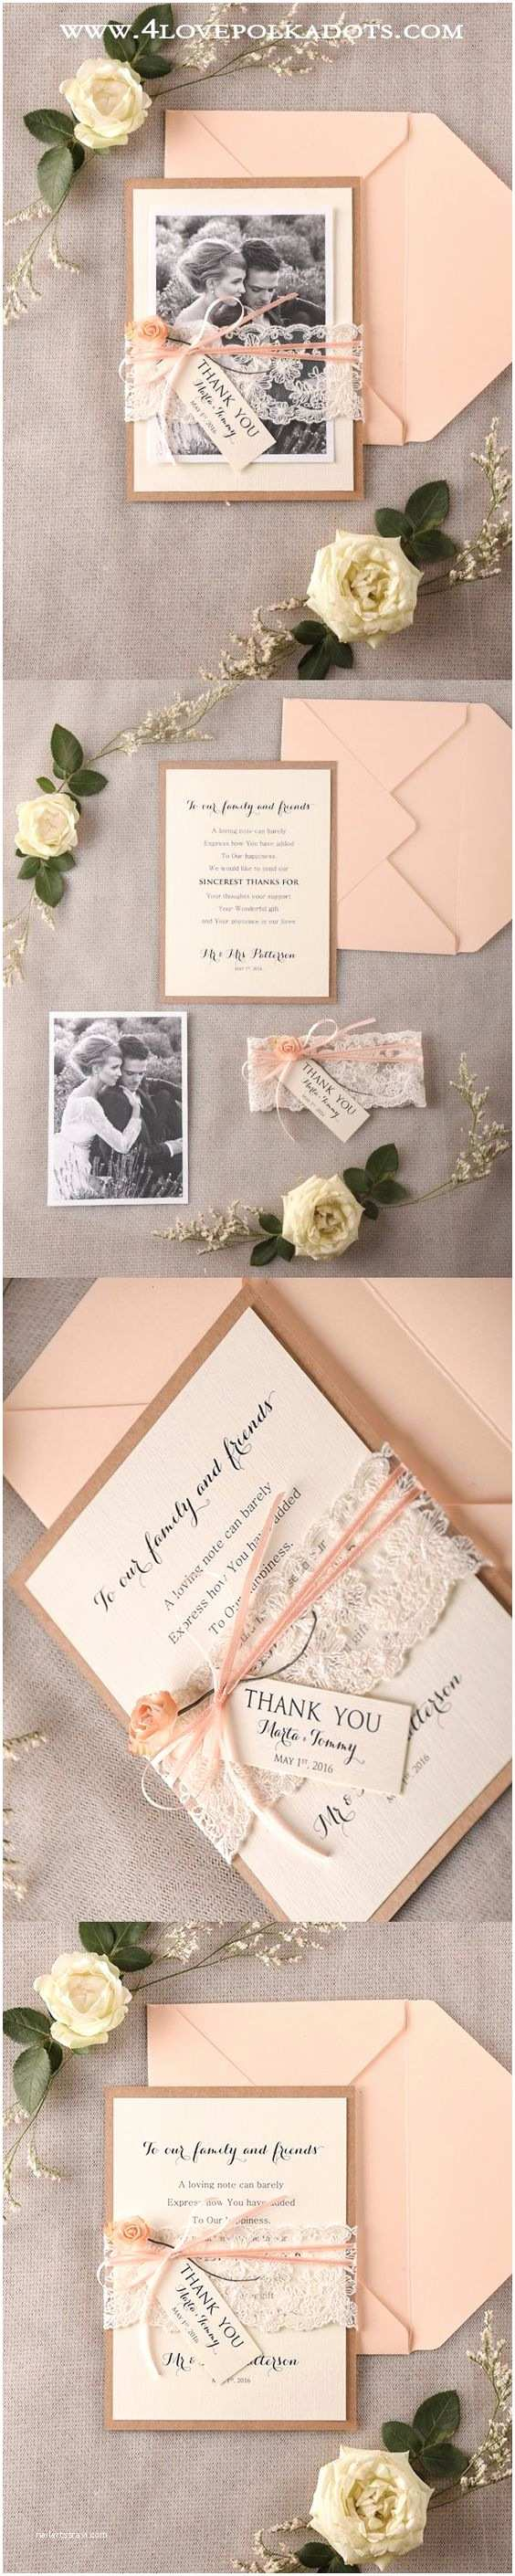 What Do You Say On A Wedding Invitation Say Thank You Peach Wedding Thank You Cards